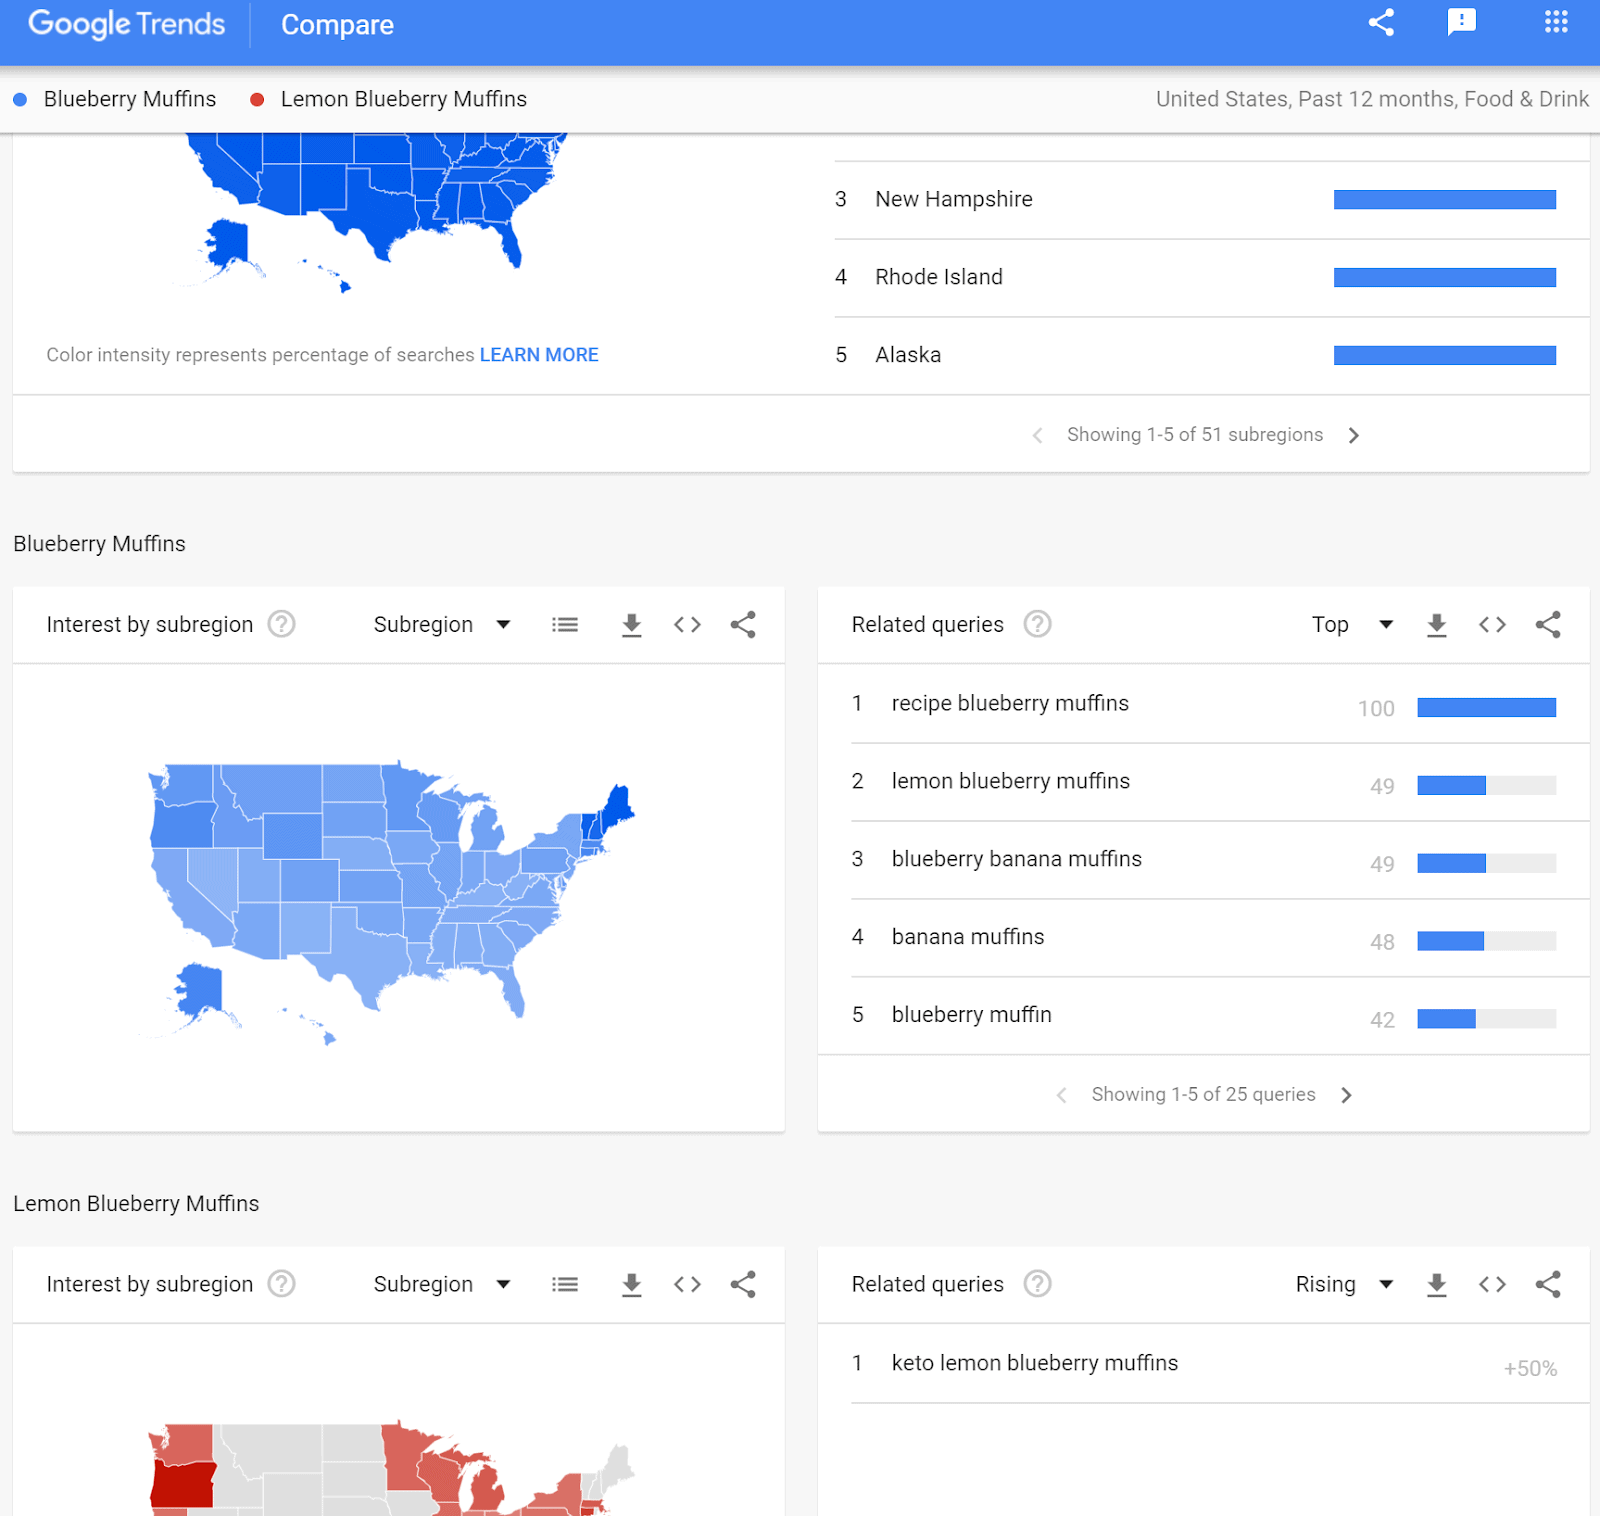 Google Trends explore page comparing Blueberry Muffins and Lemon Blueberry Muffins